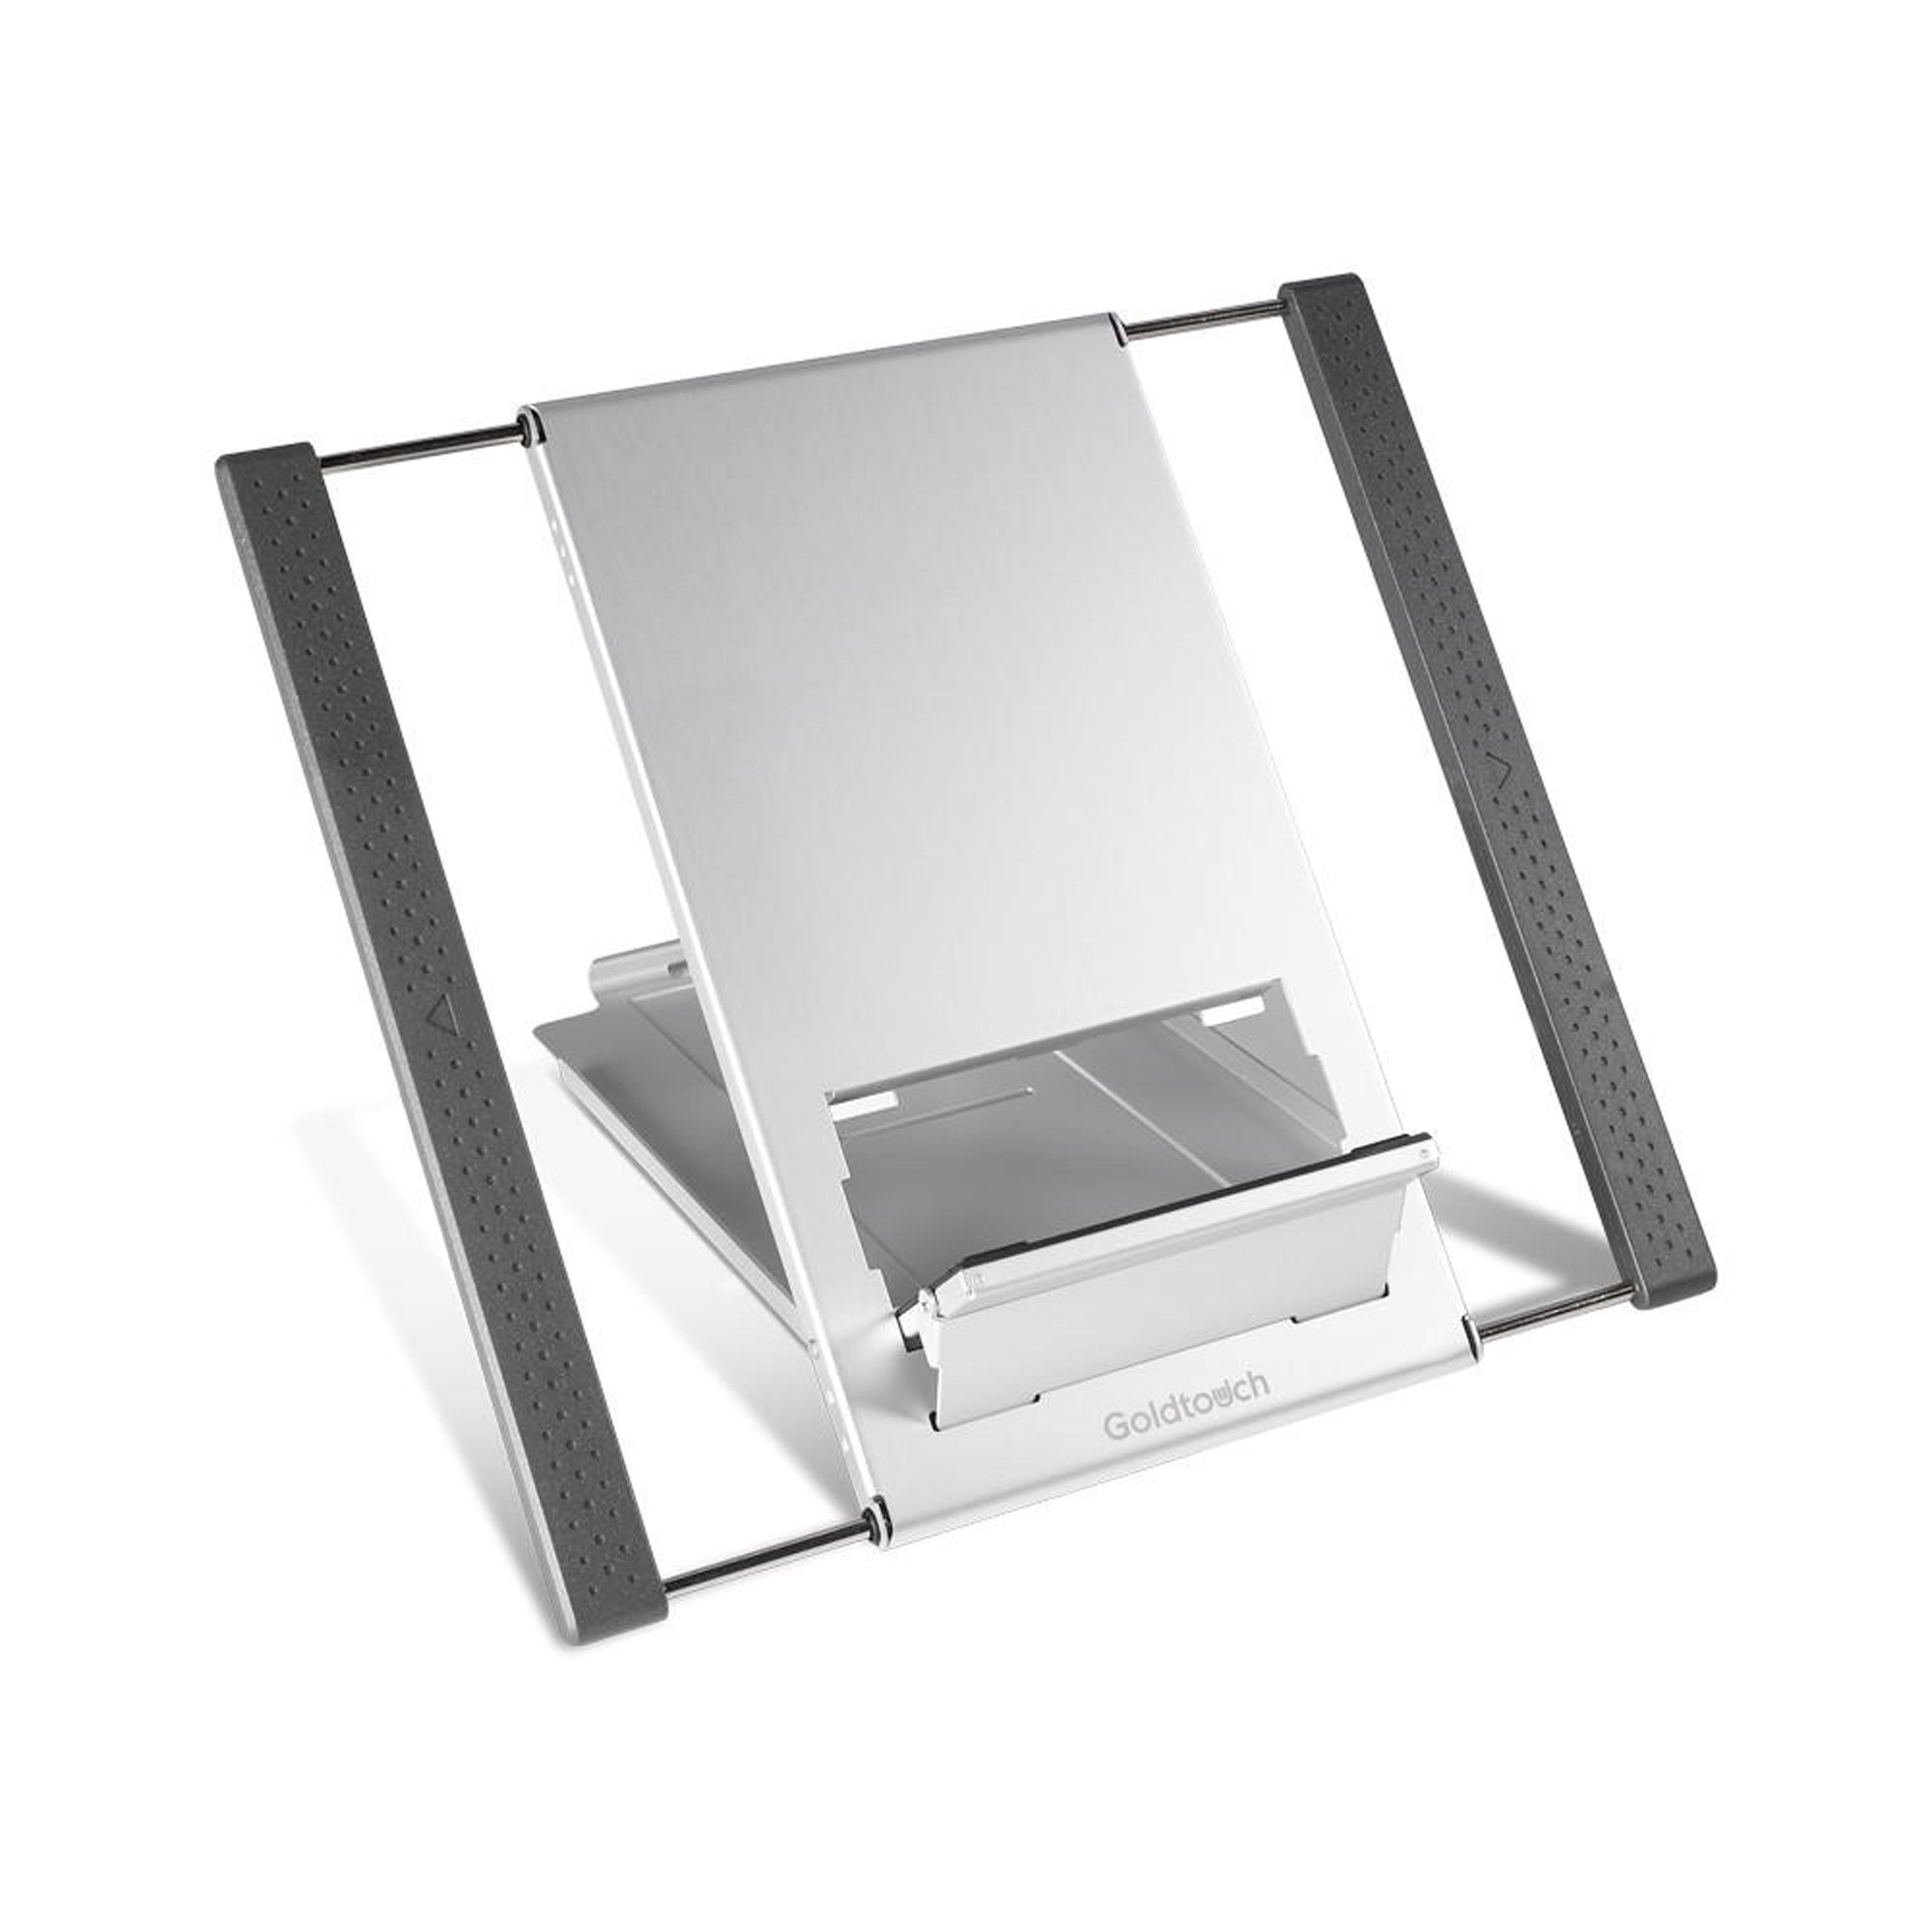 Goldtouch GTLS-0055 Go! Travel Laptop and Tablet Stand (Aluminum)